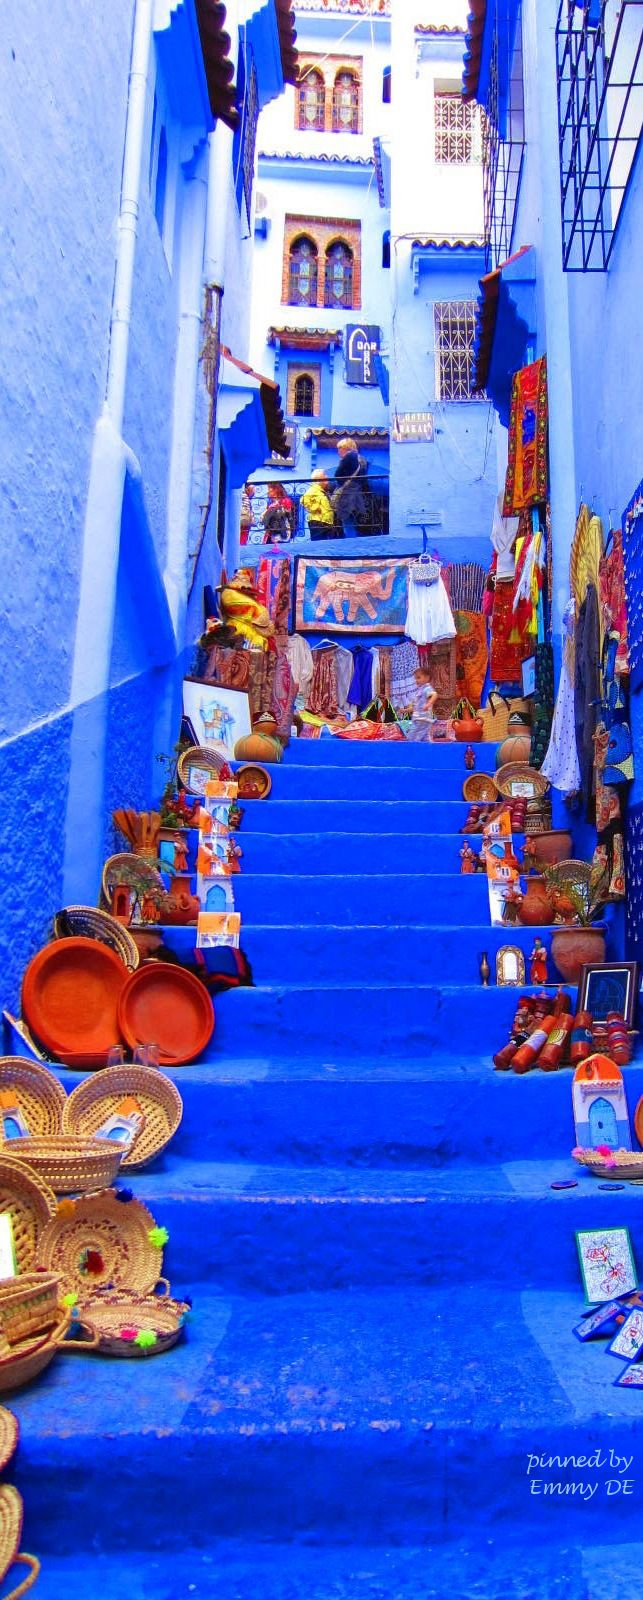 Emmy DE * The Blue City Chefchaouen, Morocco Stairway